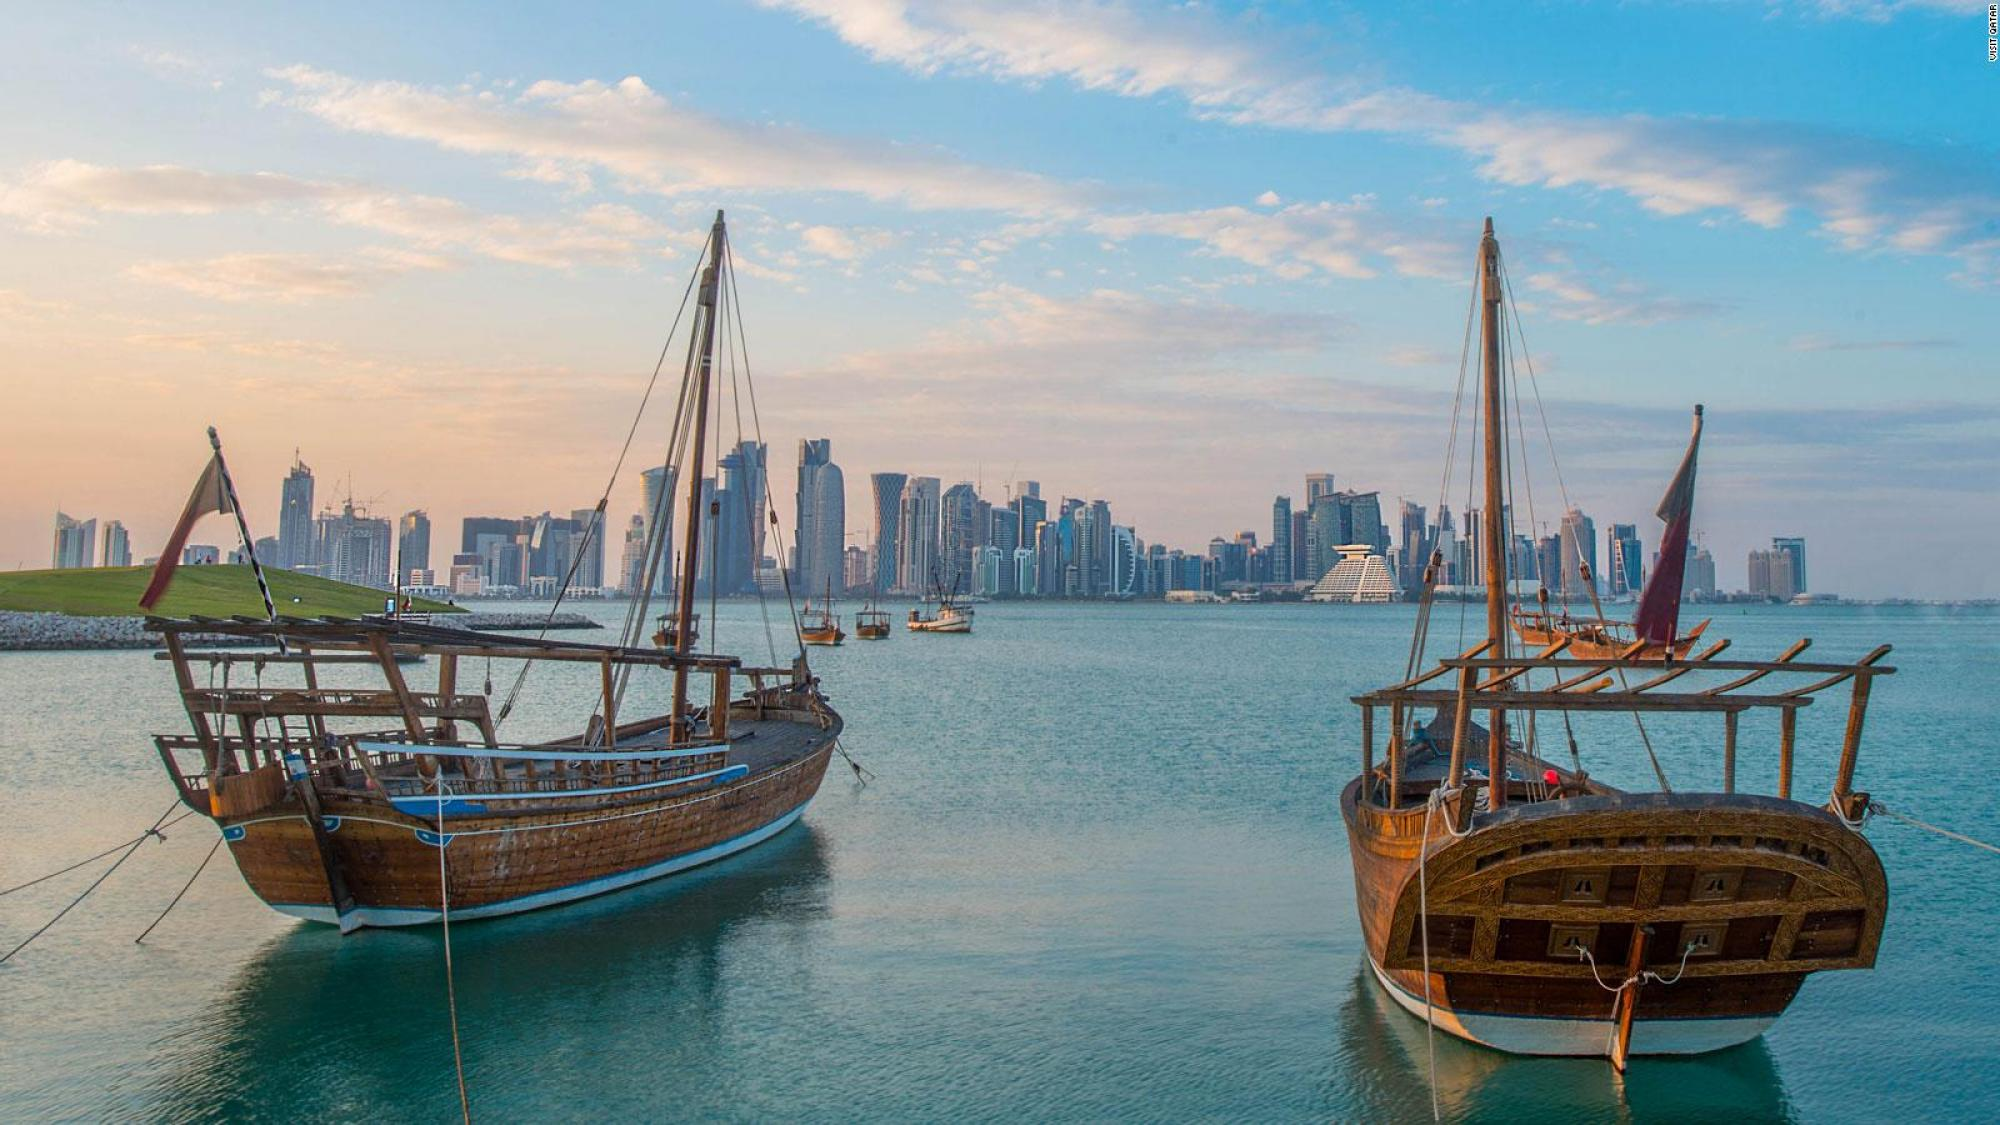 The beautiful city of Doha in Qatar